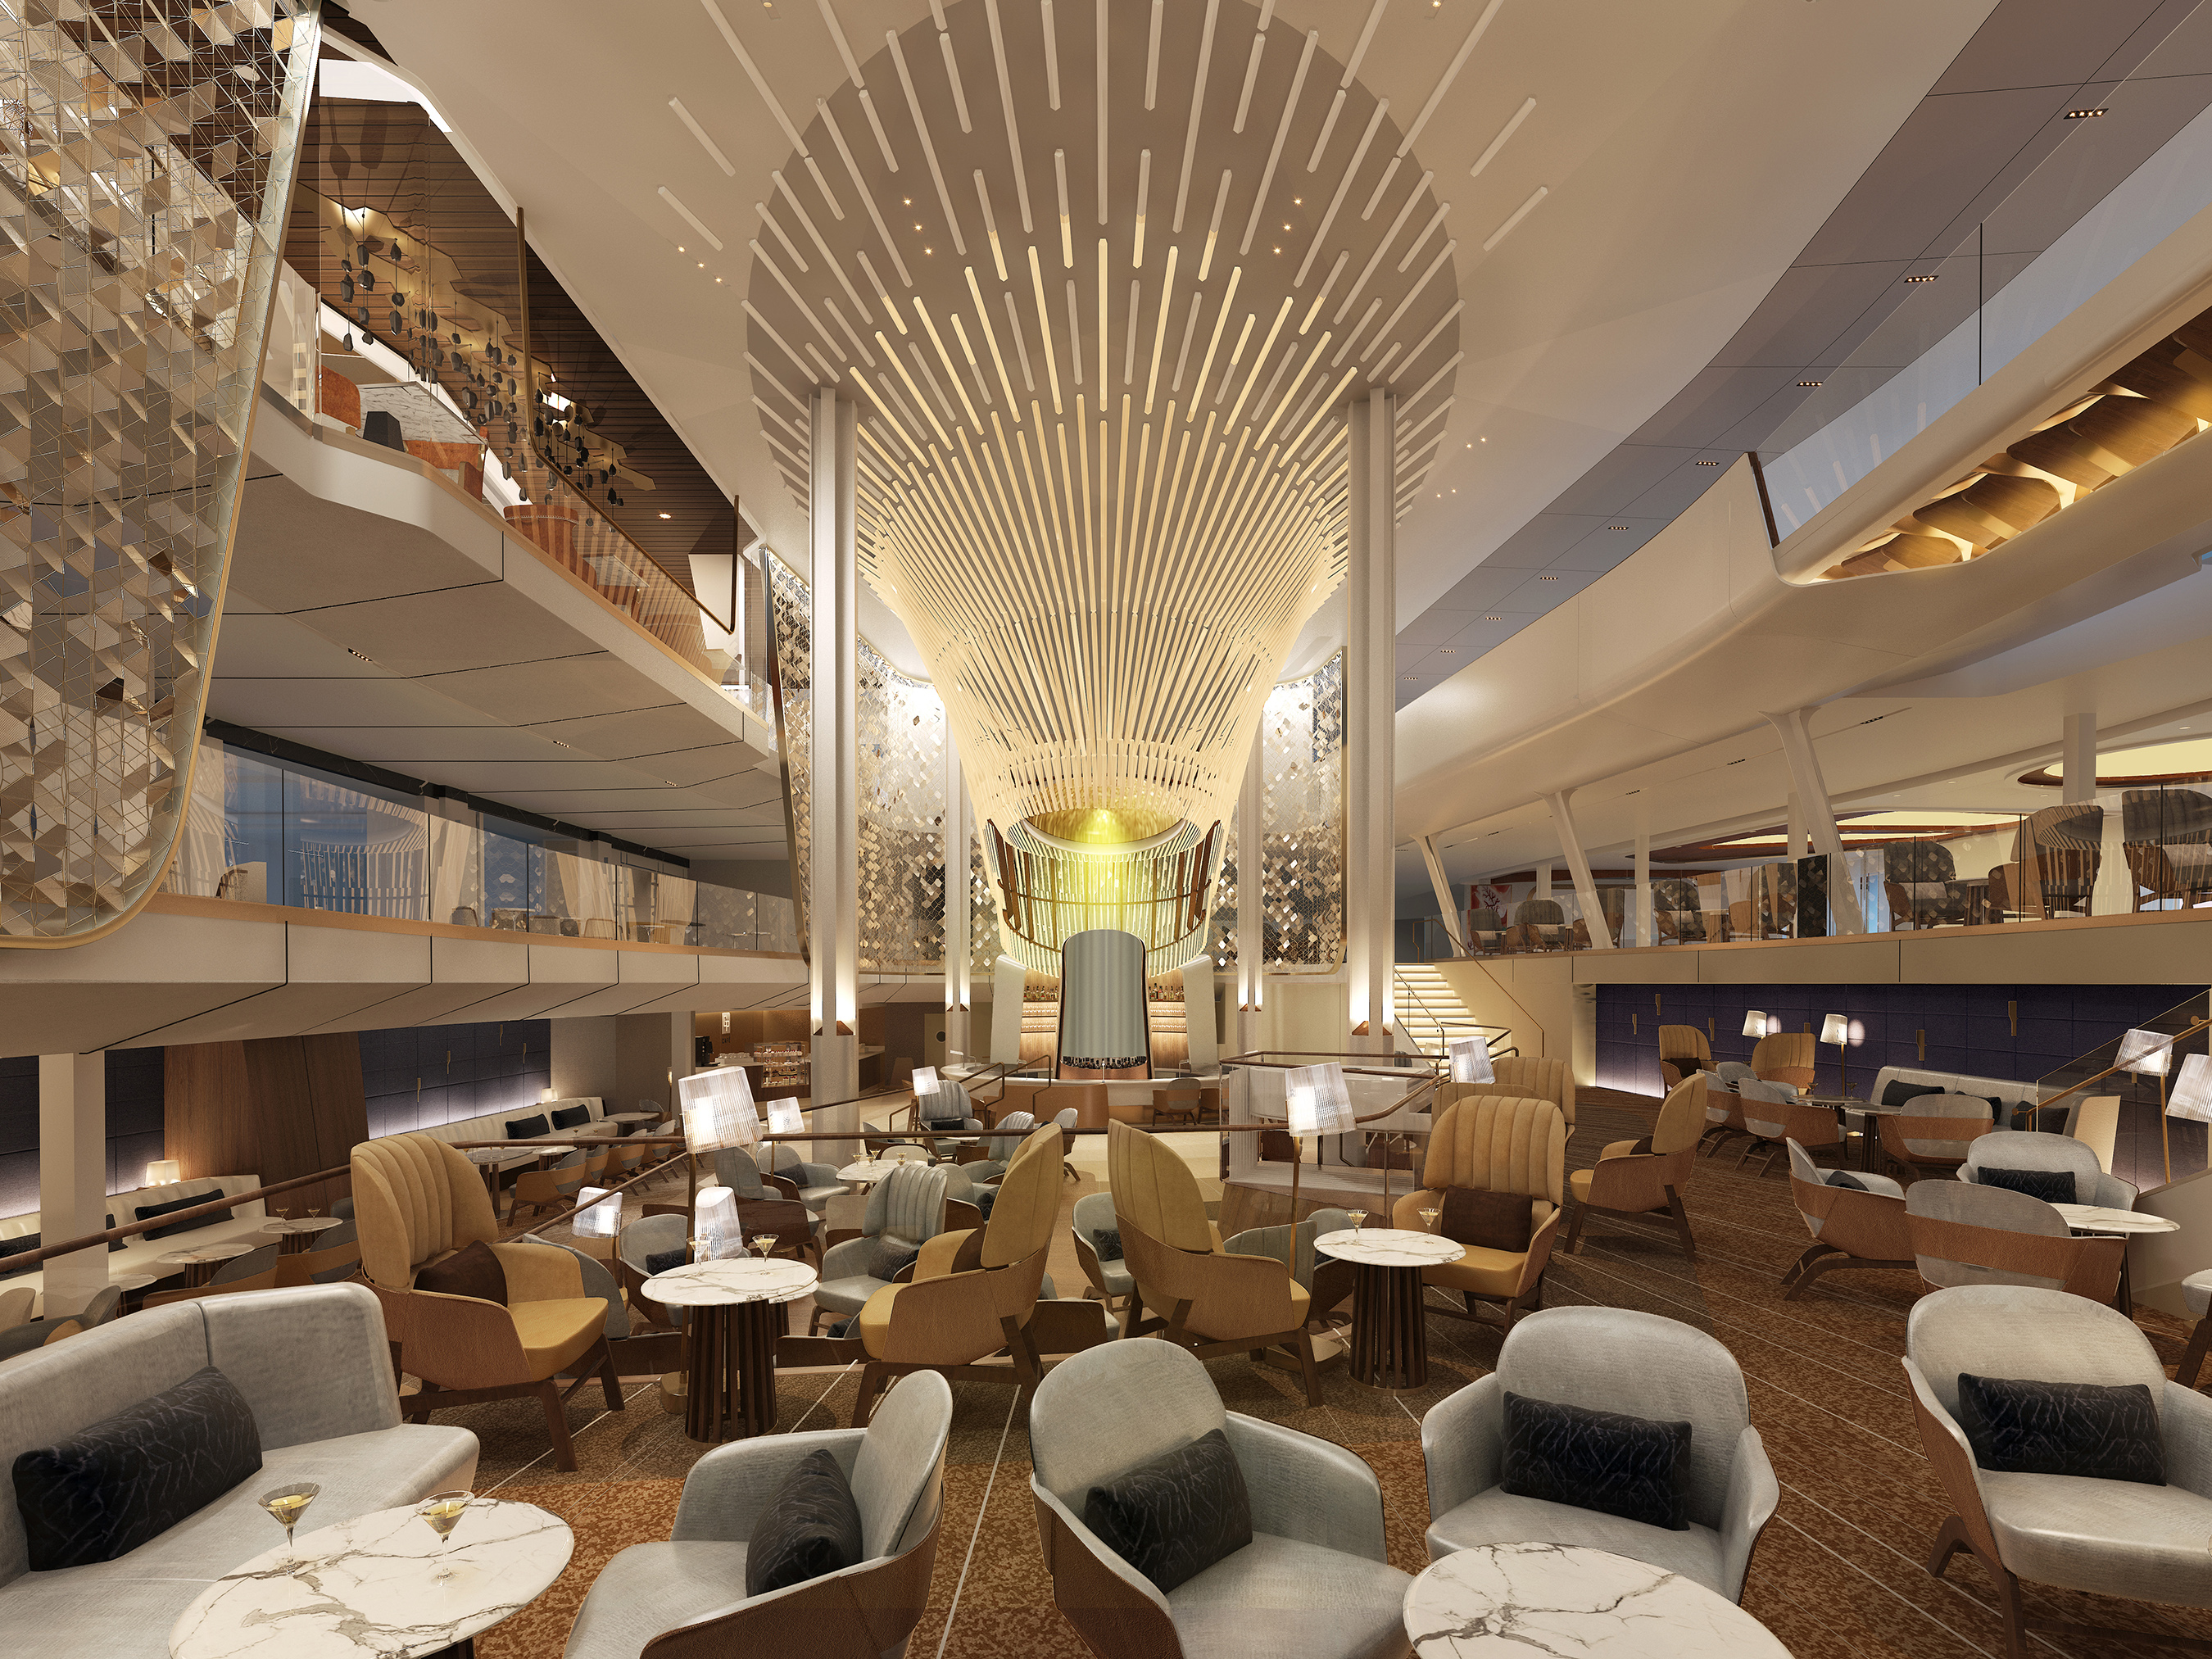 Spanning three decks at the heart of the ship, The Grand Plaza acts as the epicenter of Celebrity Edge, which radiates an energy that lures guests throughout the day, as it transforms both physically and atmospherically. Here, guests will be transported to the lively piazzas of Italy, of which this sprawling 5,167 sq. ft. space was also inspired. The Grand Plaza is home to many of the incredible new specialty restaurants.